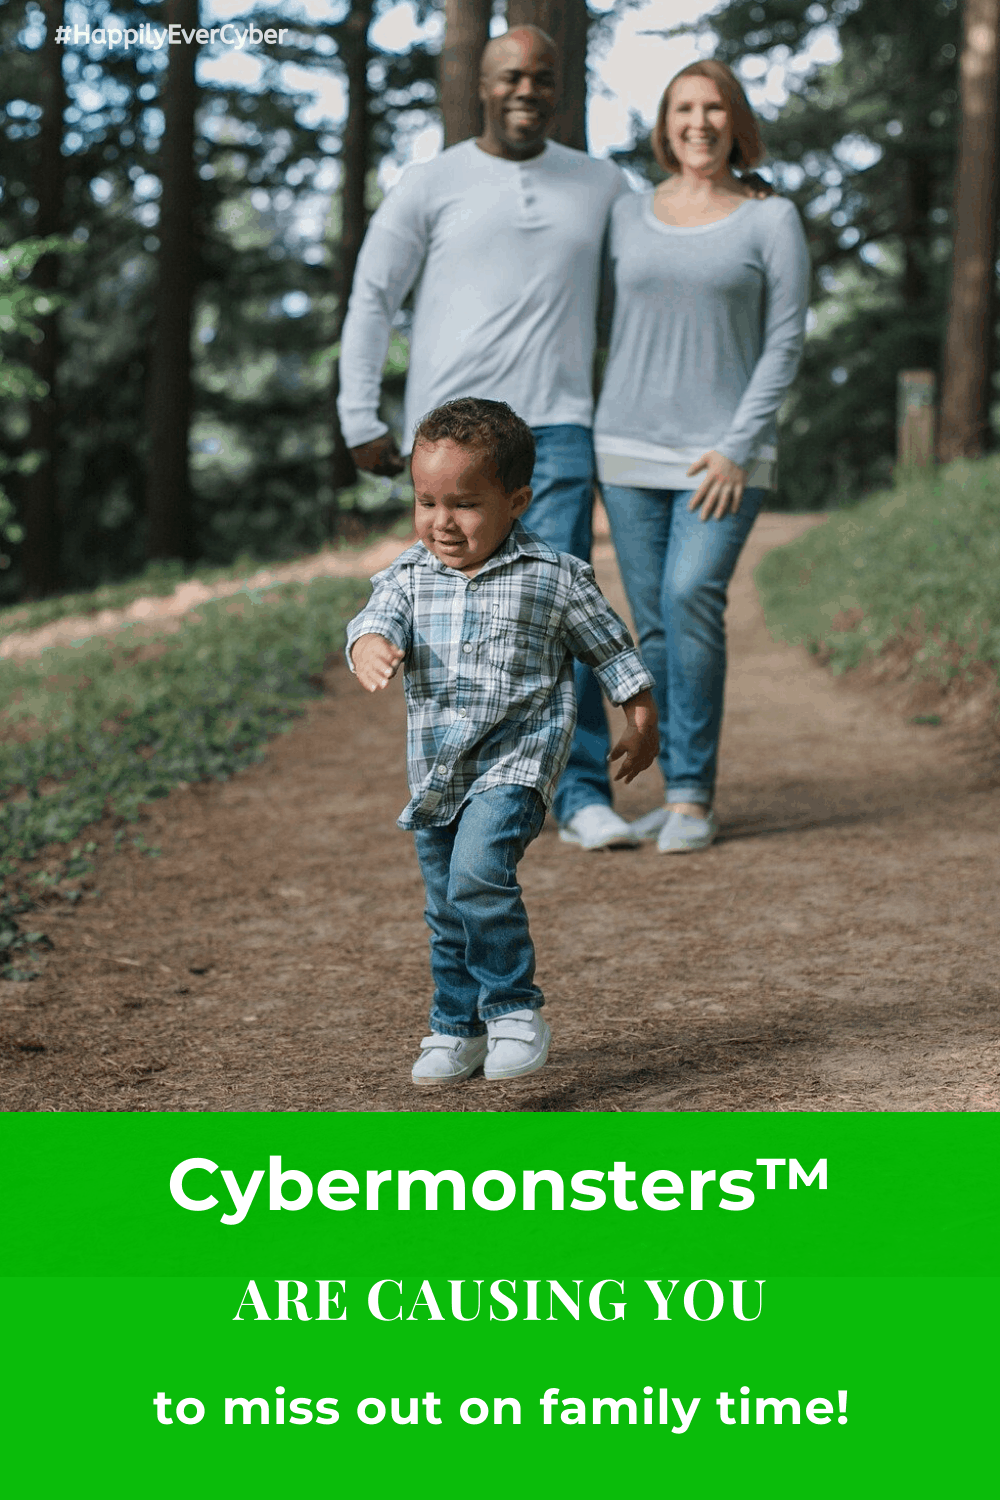 CybermonstersAre Causing YoutoMiss OutOnFamily Time - Happily Ever Cyber - Sandra Estok - Protect Your Family